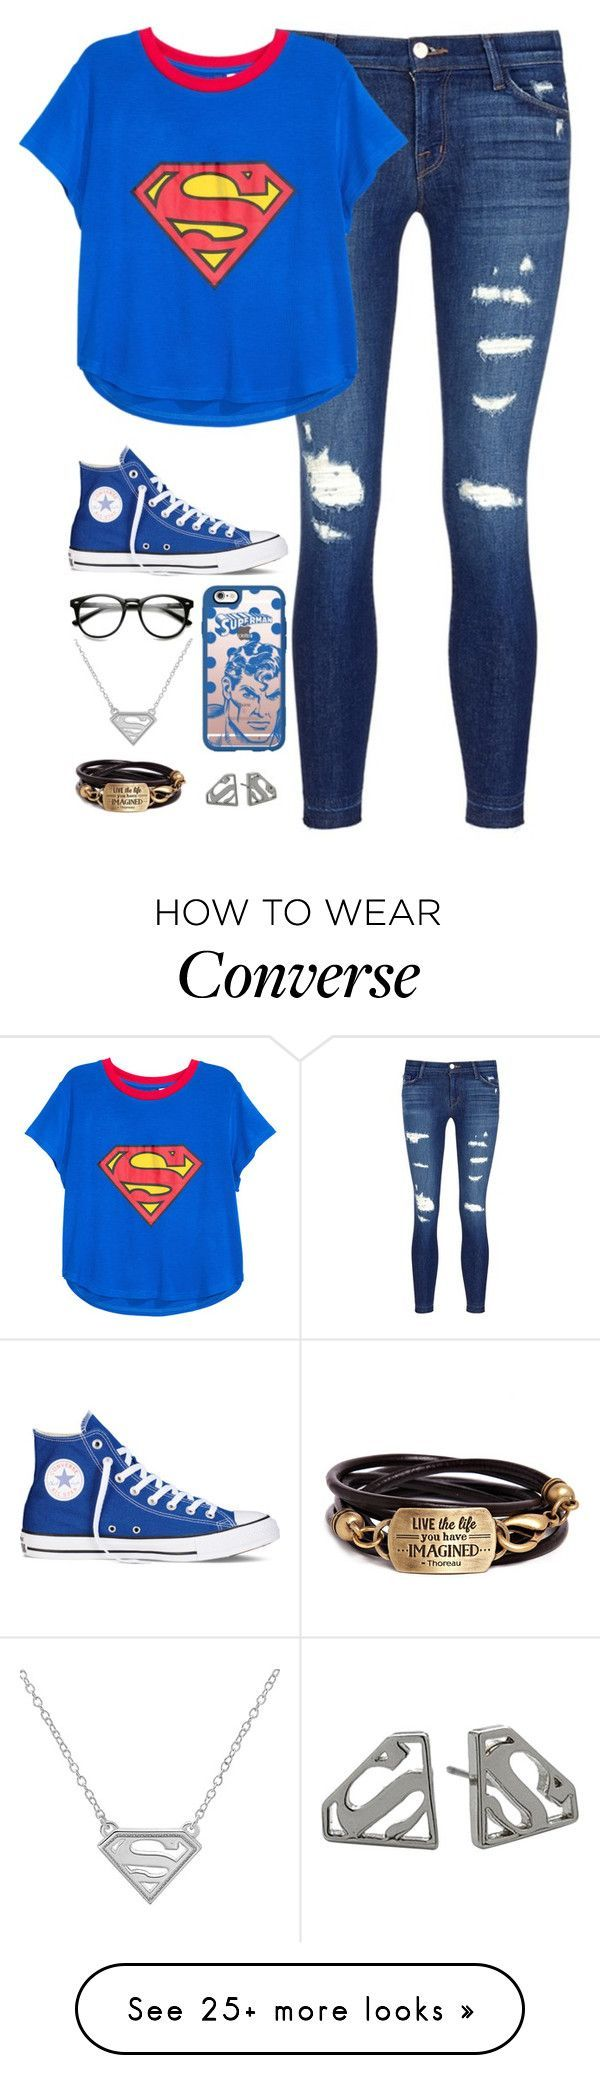 Untitled #46 by kasaikayla on Polyvore featuring J Brand, H&M, Converse, Casetify and Noir